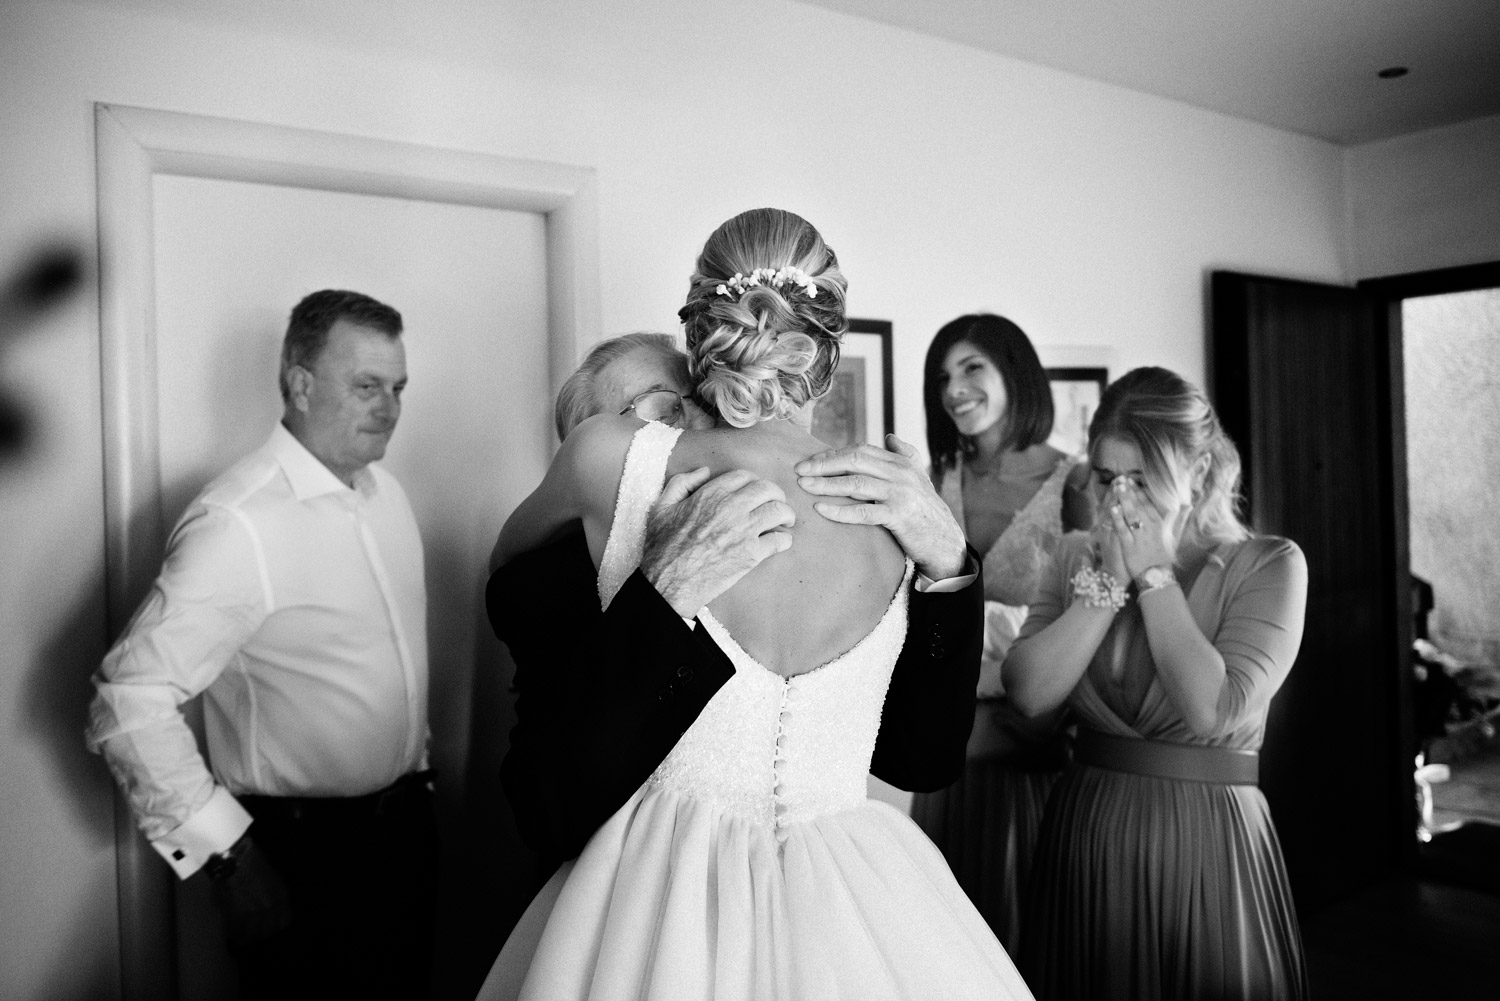 Framelines Italian Wedding Photographer